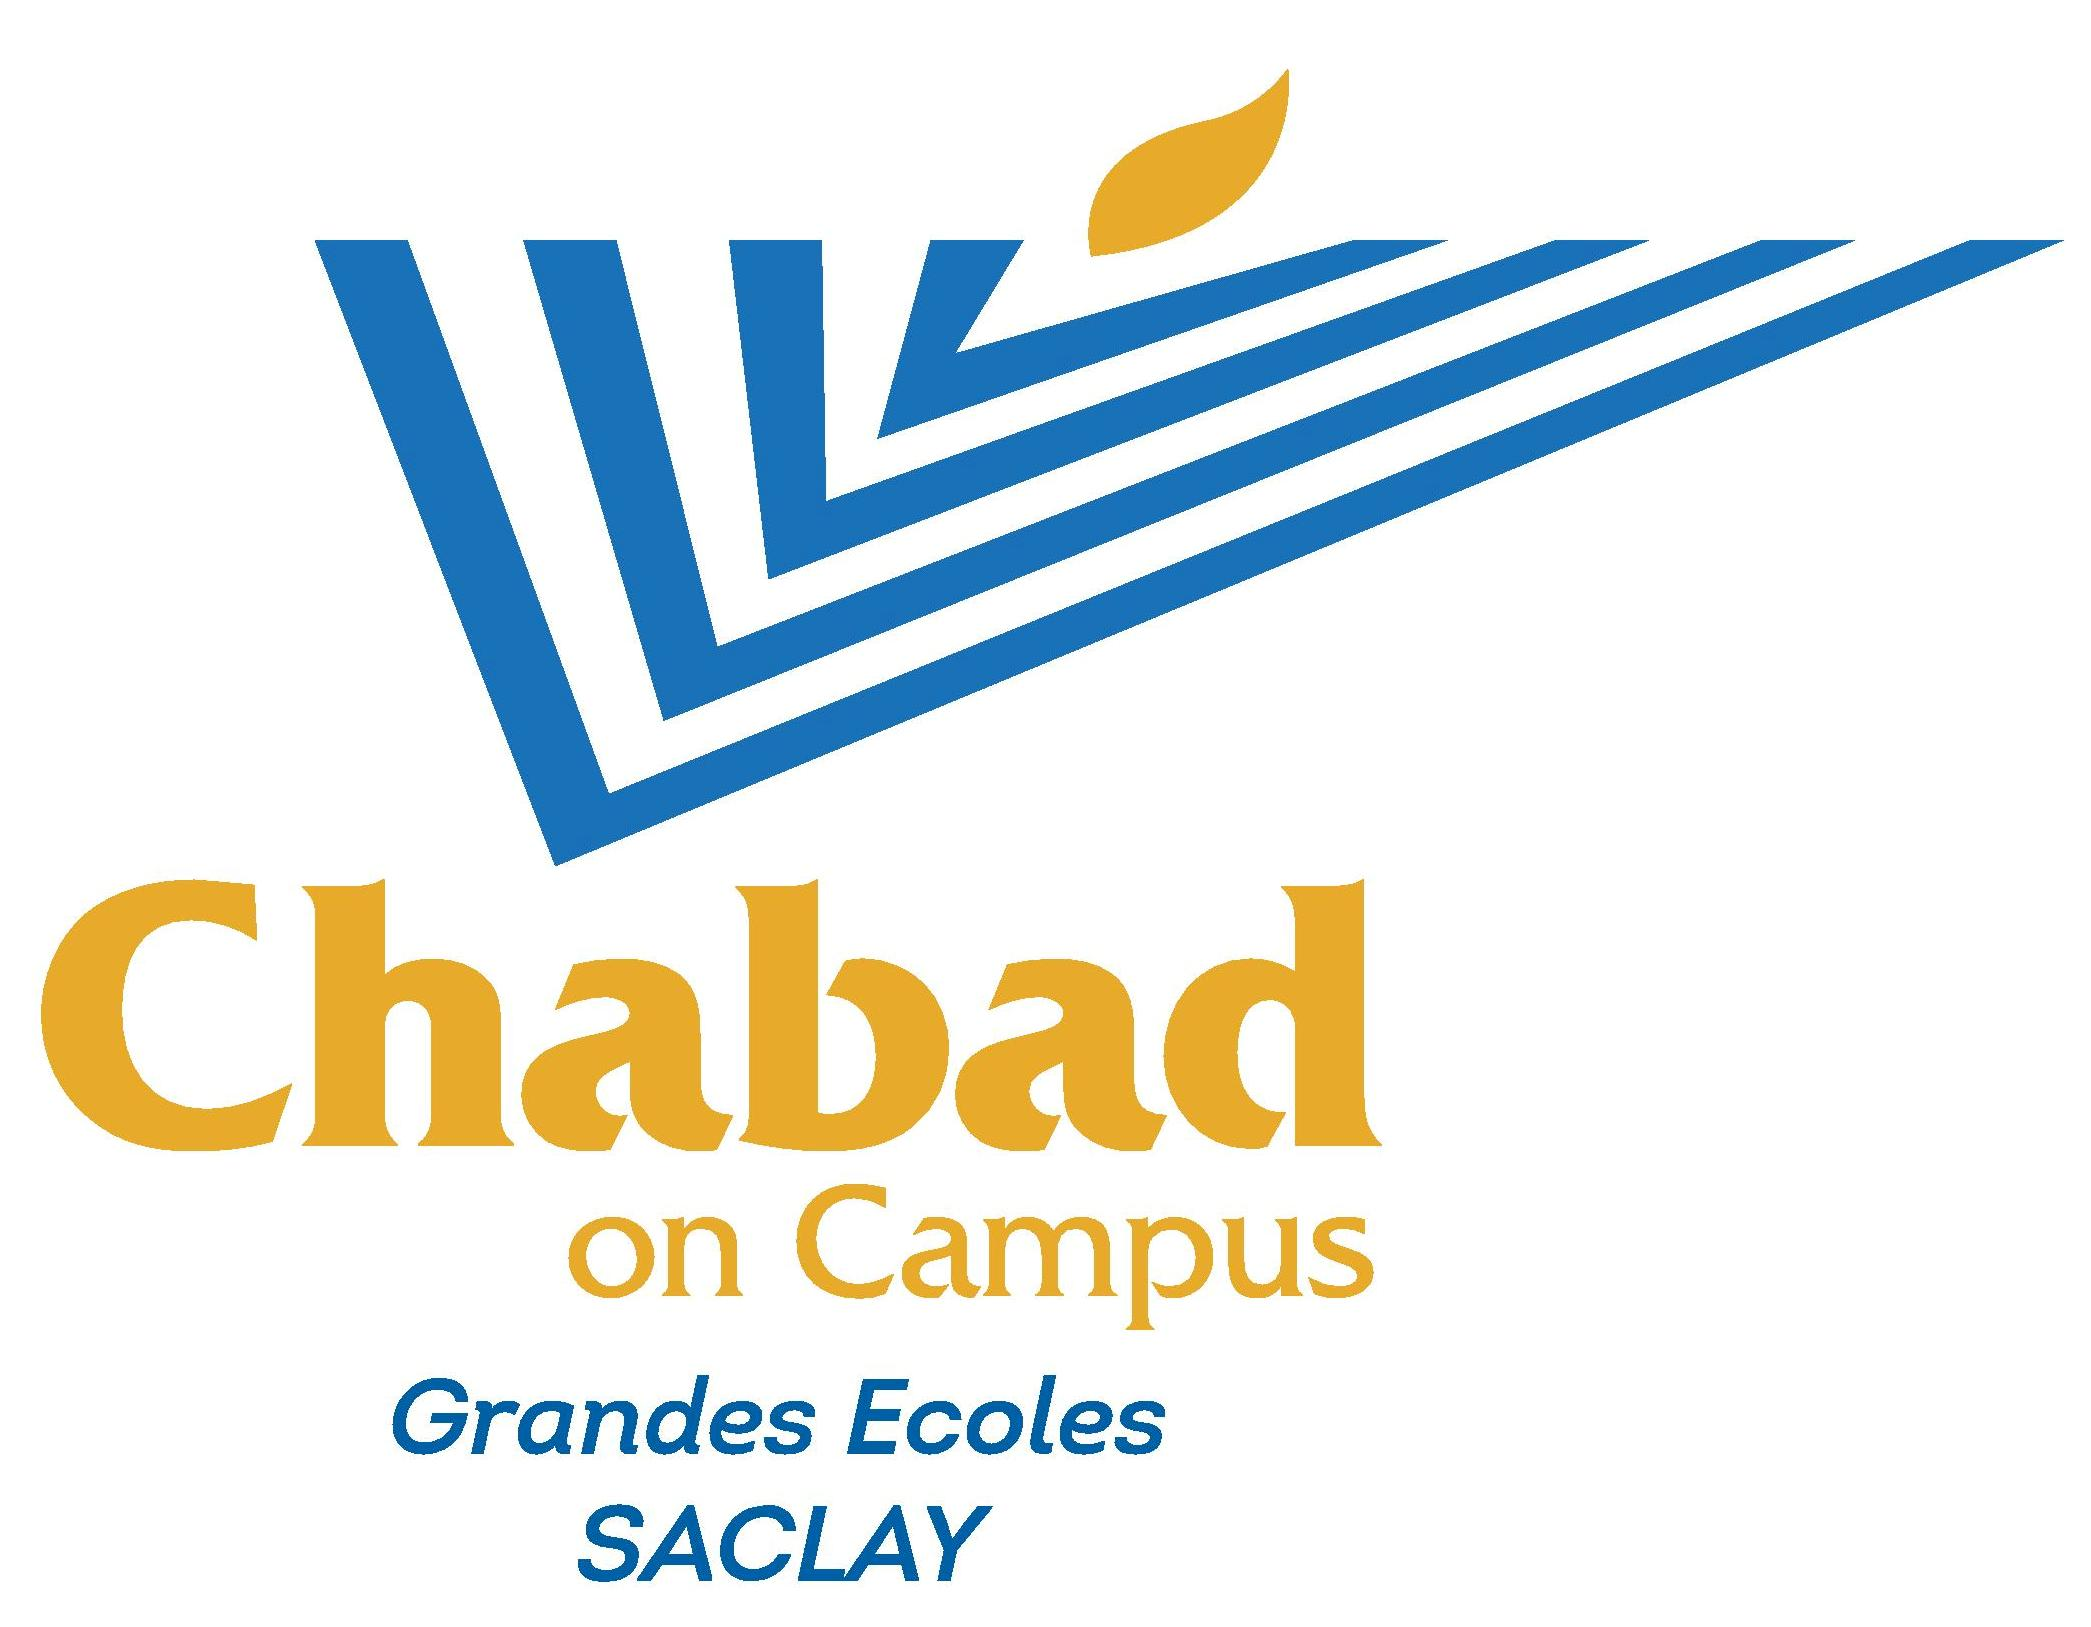 Chabad on Campus Saclay